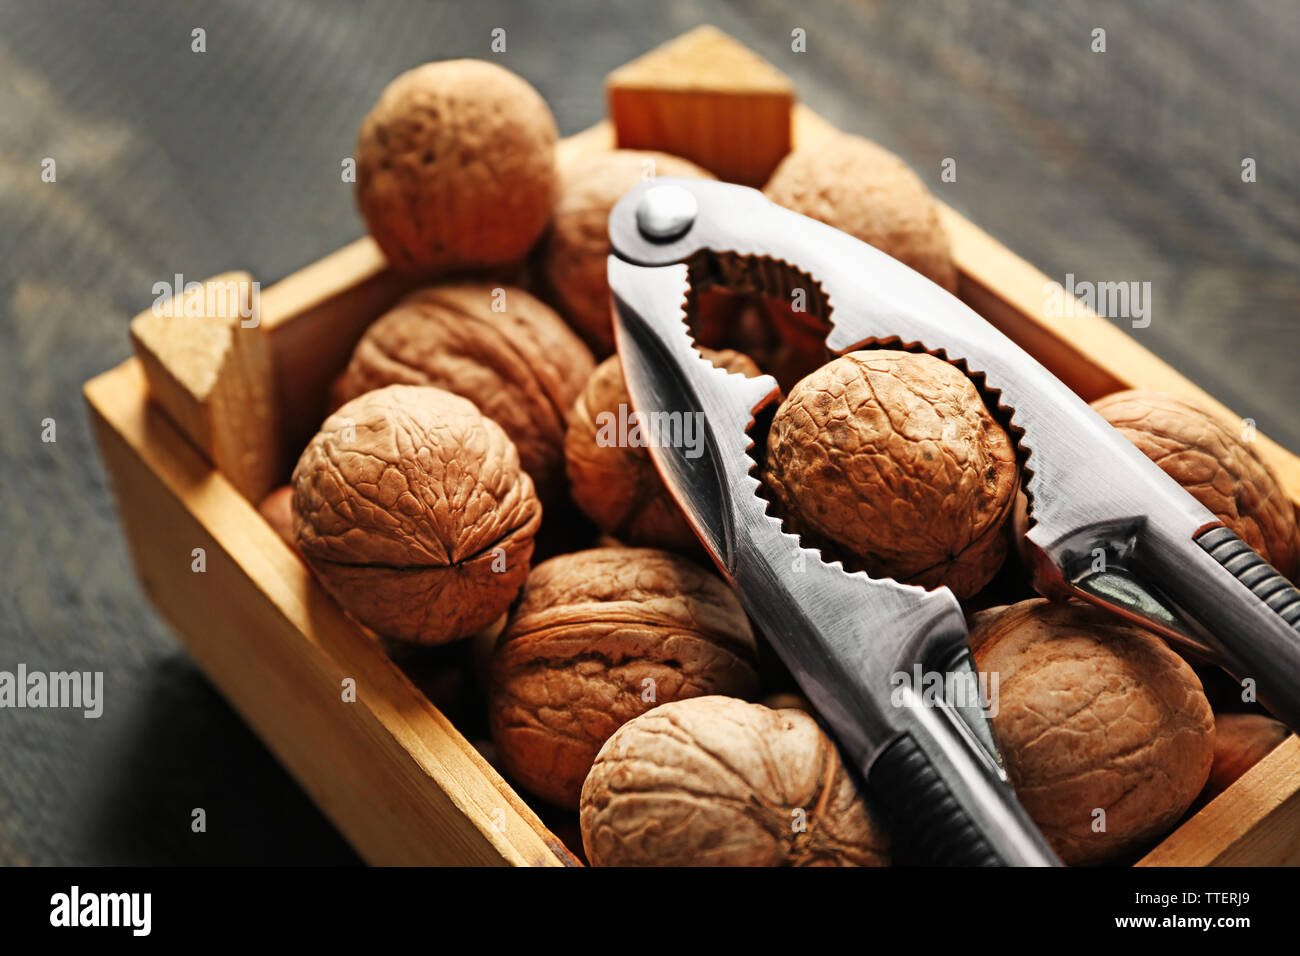 A box of walnuts and nutcracker on wooden background Stock Photo